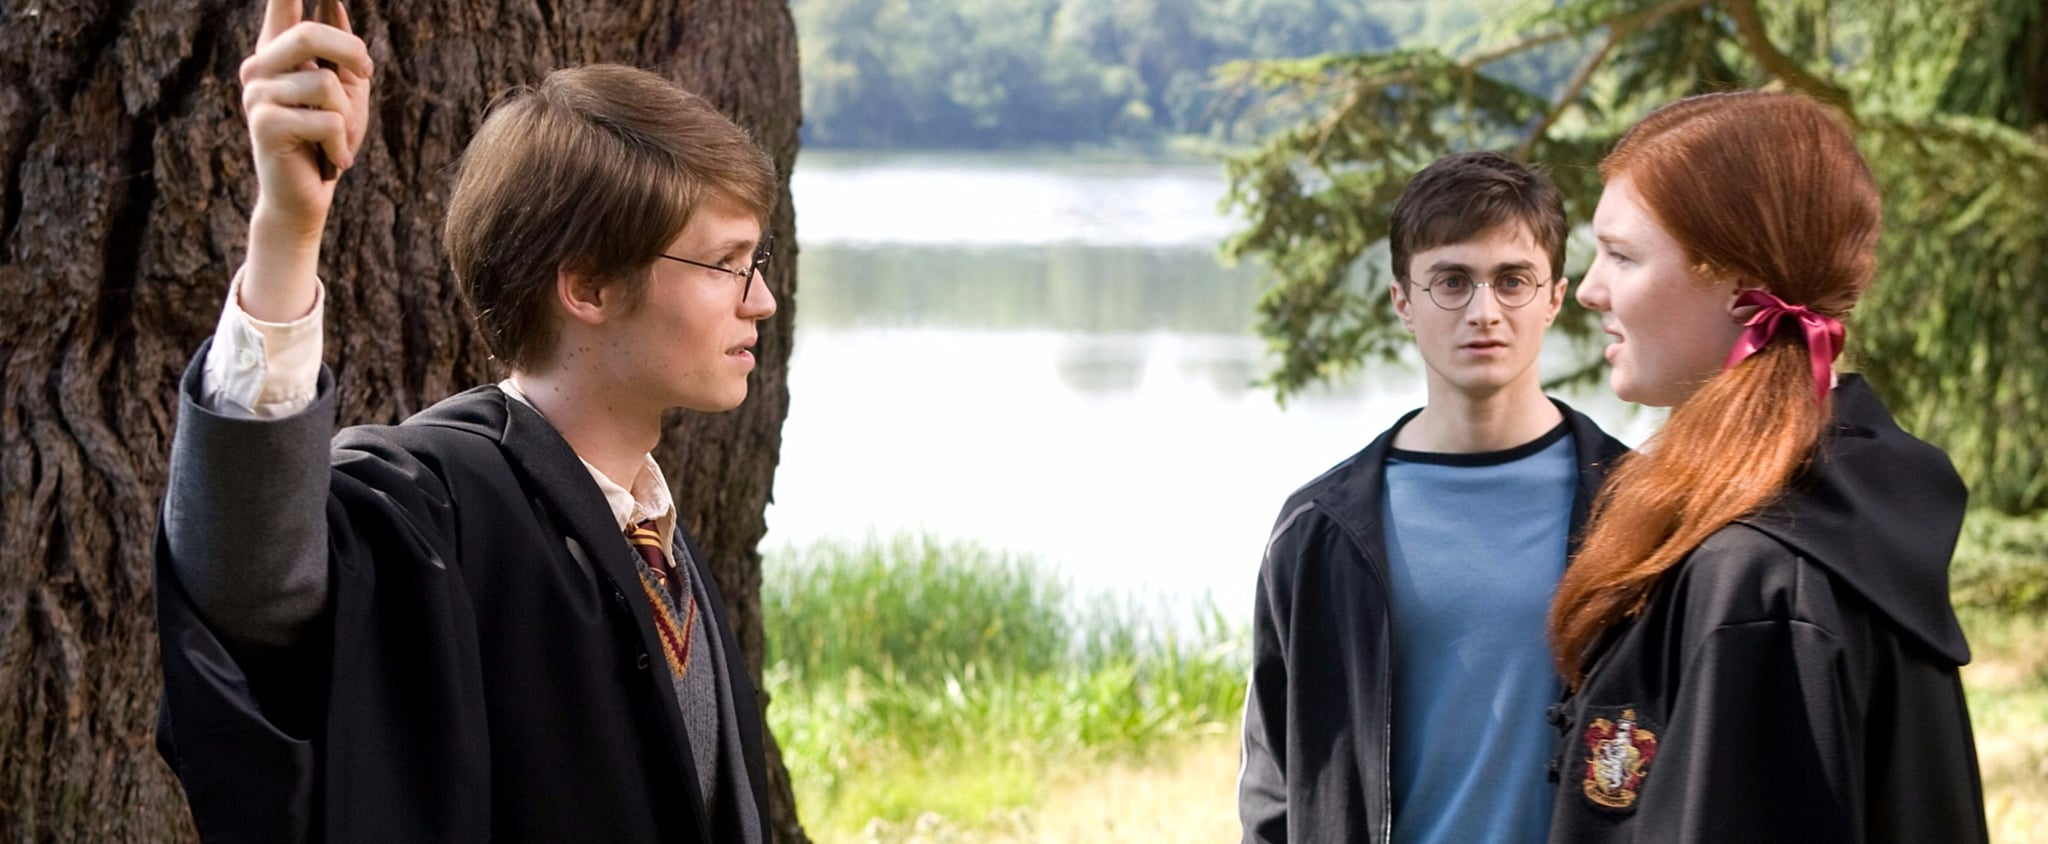 Connection Between the Marauders and Dumbledore's Army